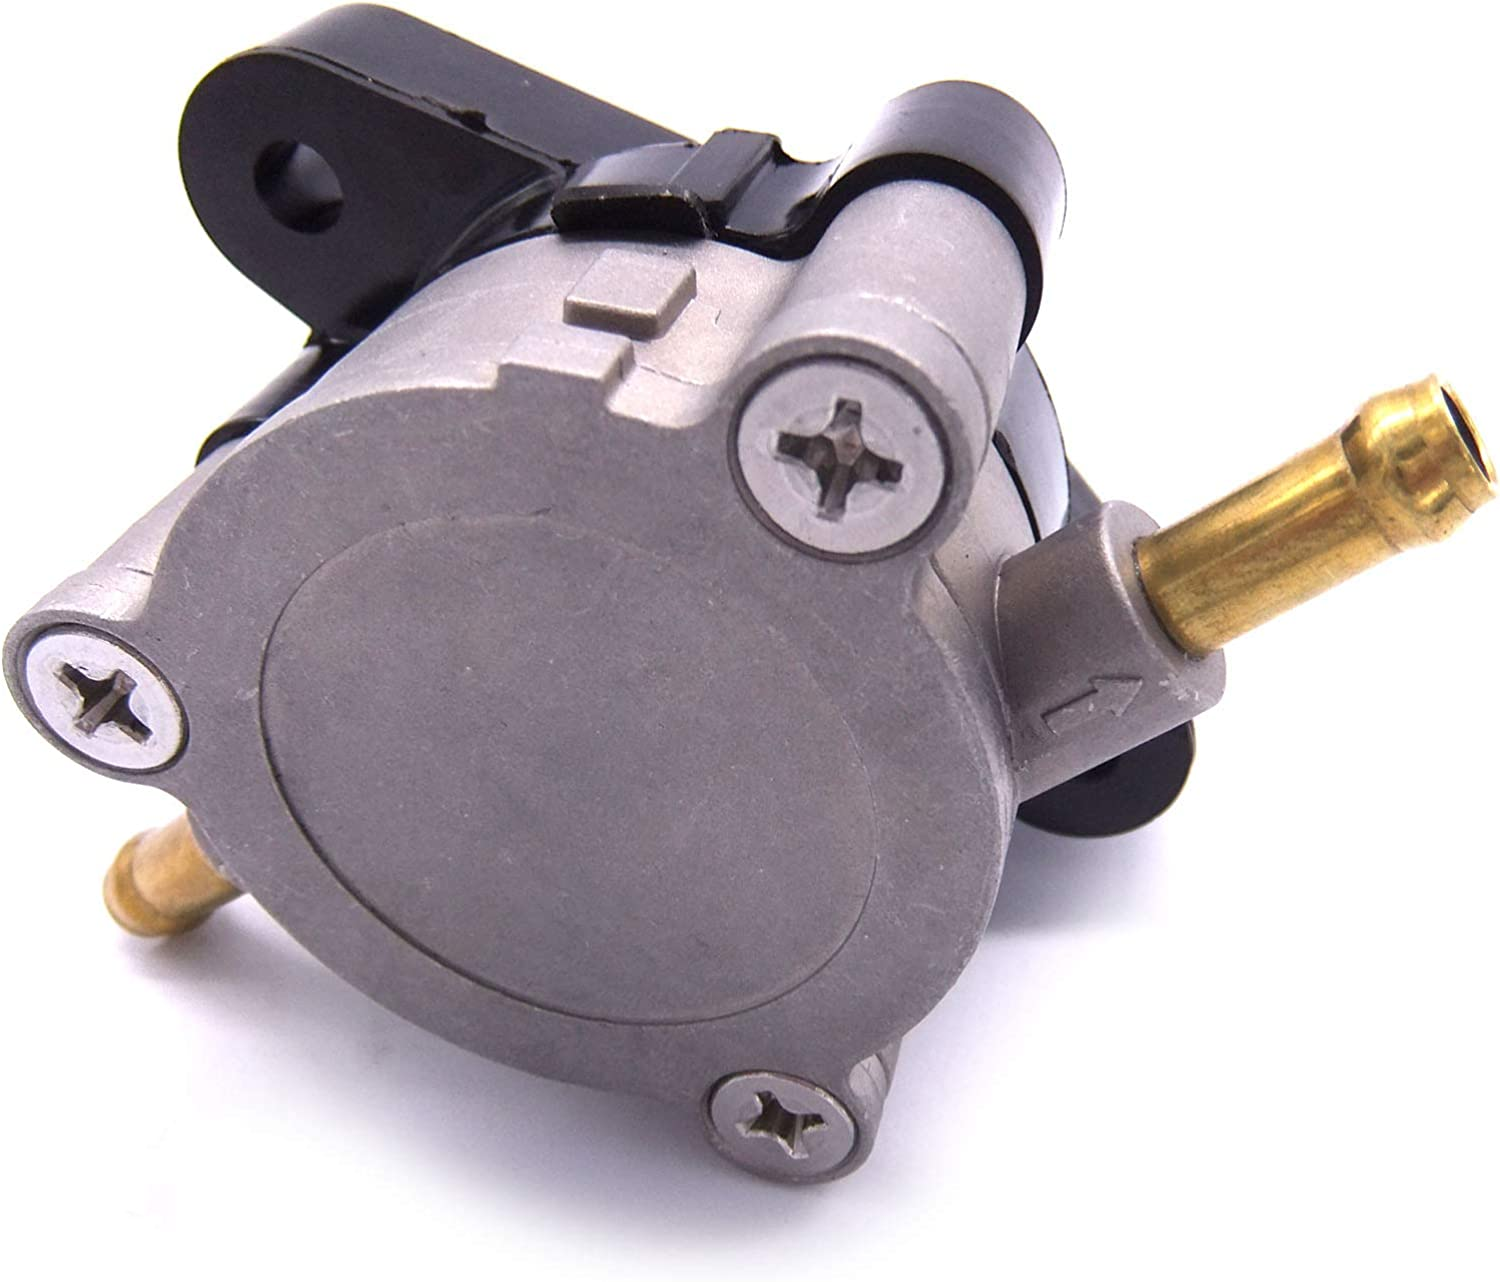 Replaces 68V-24410-00-00 6D8-24410-00-00 UP Yamaha 4-stroke Outboards F75 F80 F90 F100 F115 LF115 HP Engines Fuel Pump Compatible with 2000